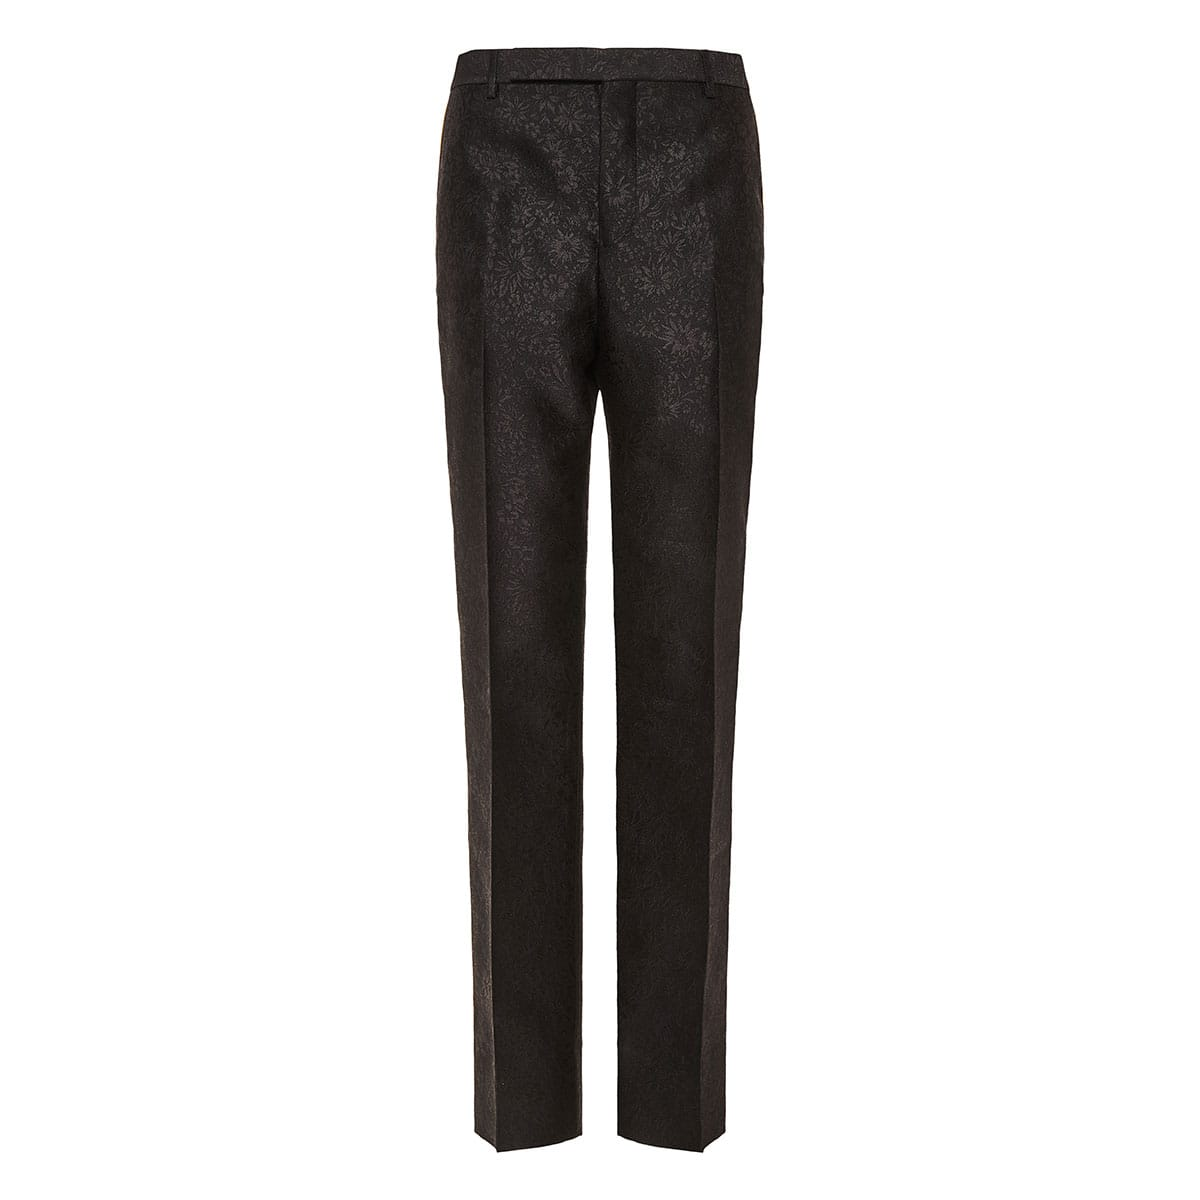 Jacquard tailored trousers with side bands